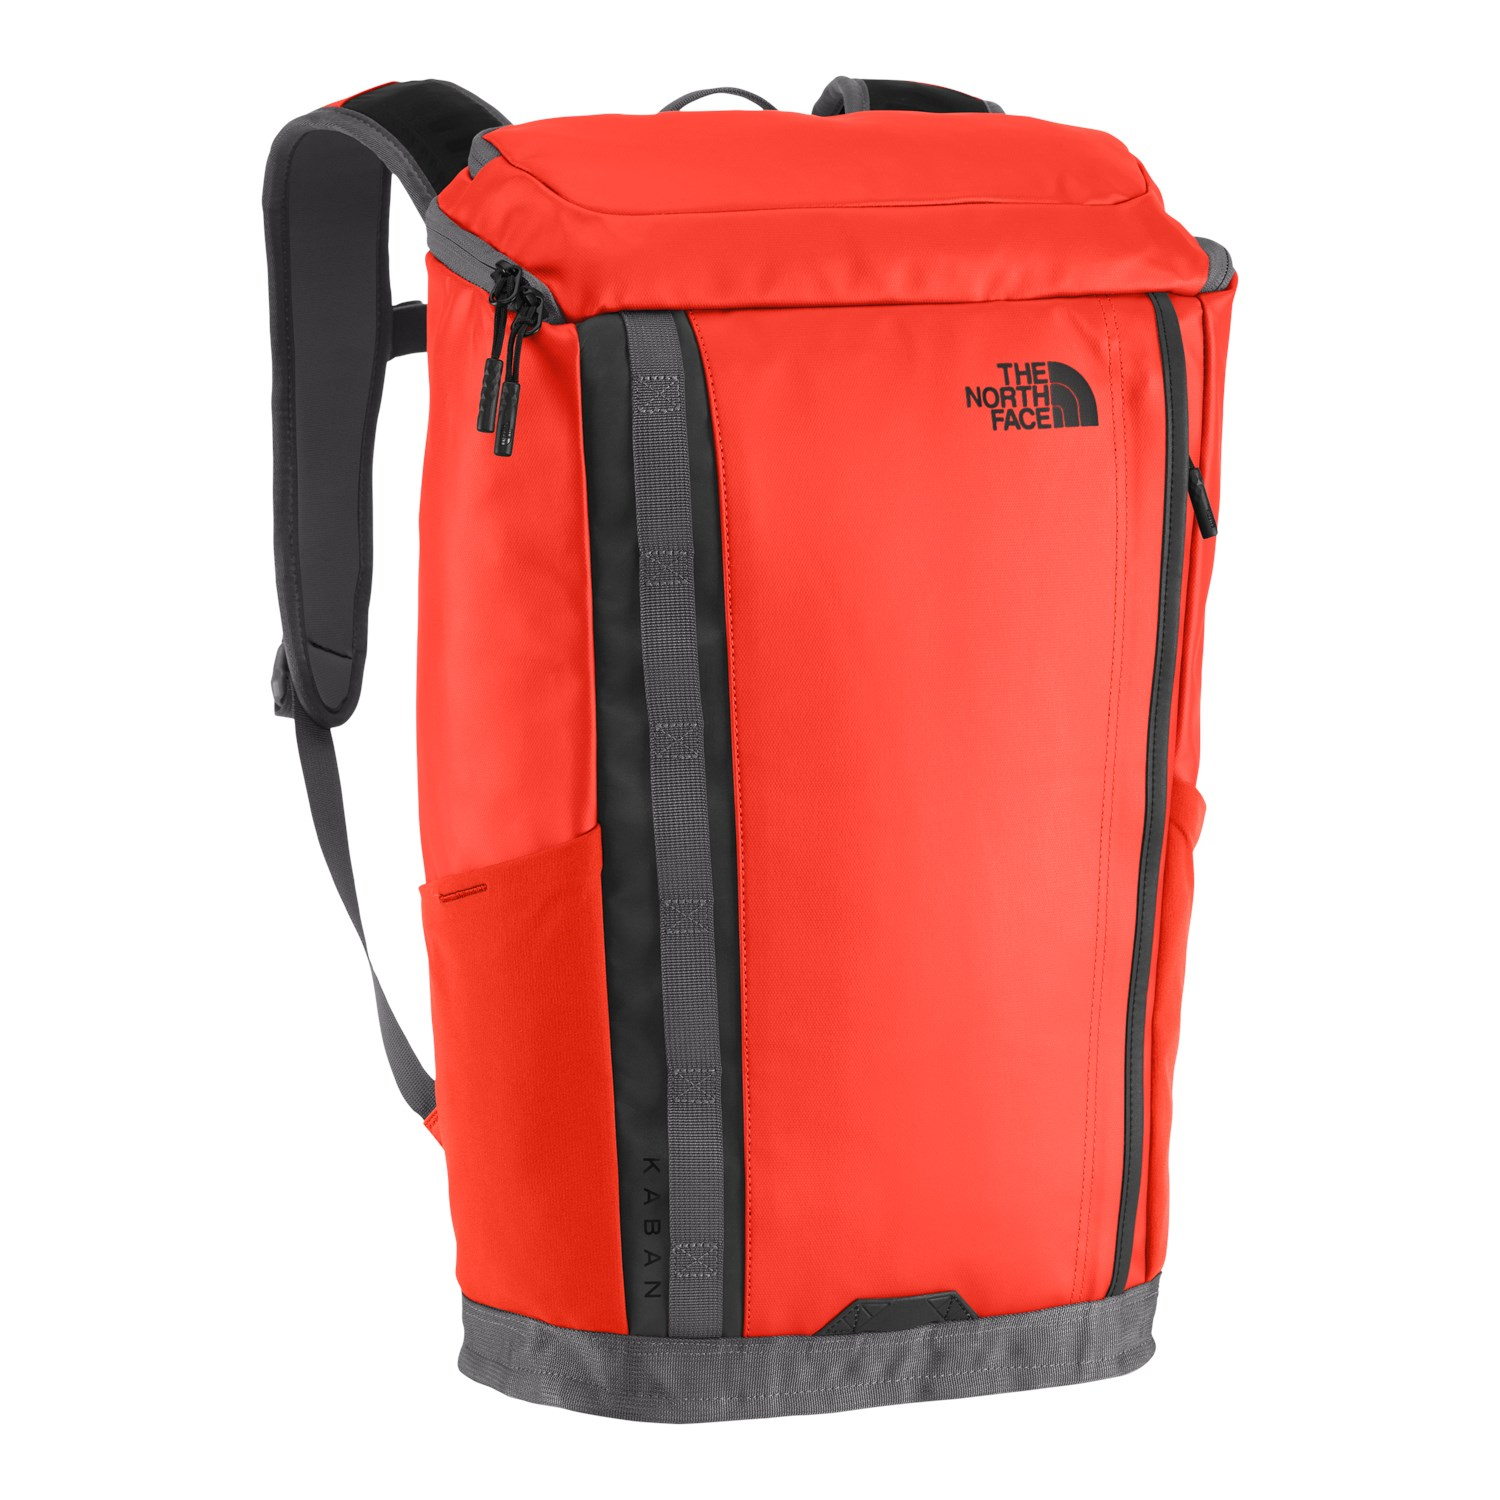 The North Face Kaban Laptop Backpack - CEAGESP 4ba7dd28b6ea